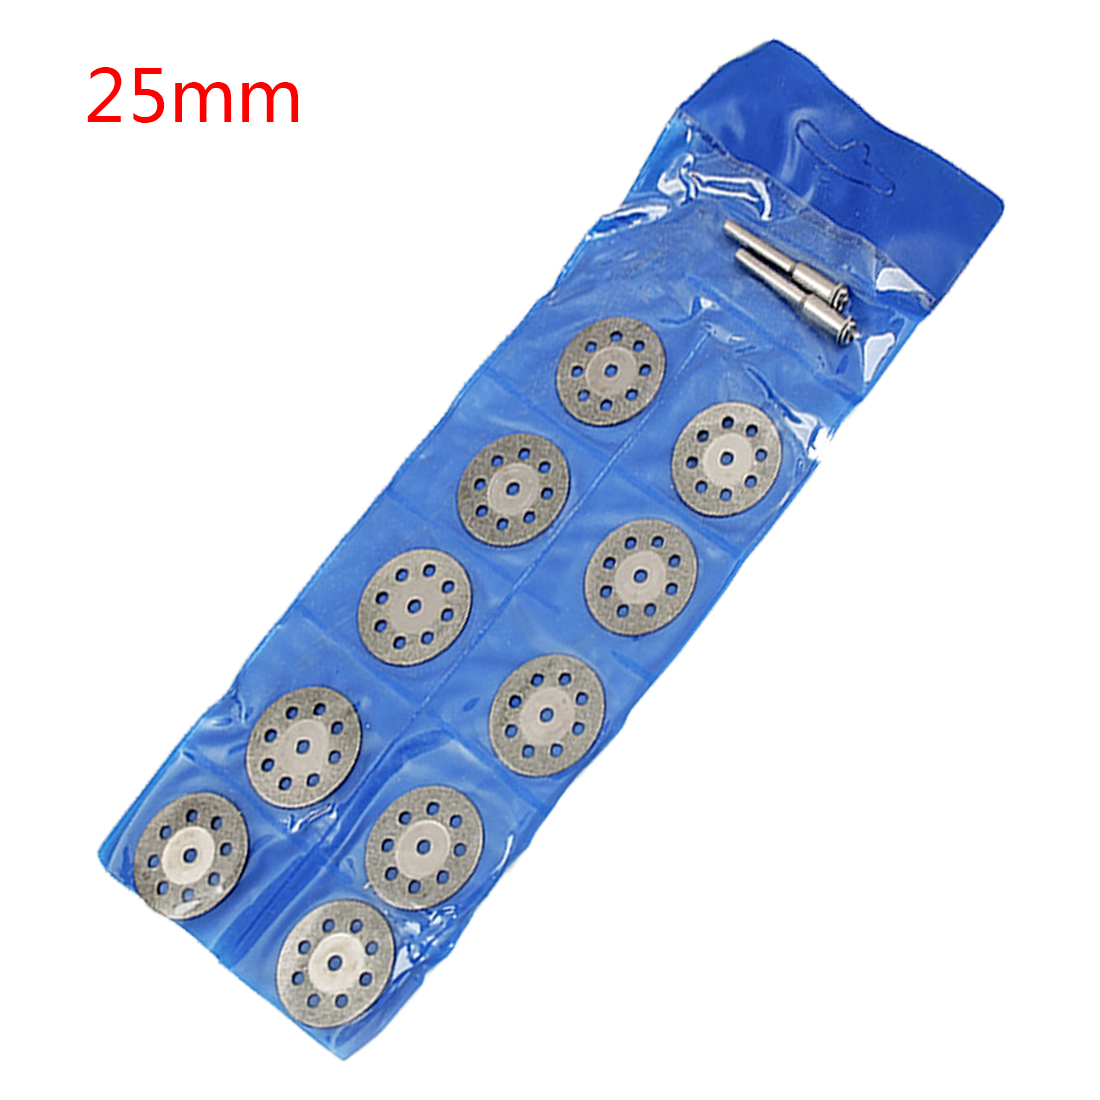 20-25mm 10pcs/5pcs Abrasive Disc Dremel Diamond Grinding Wheel Saw Cutting For Dremel Rotary Tools Accessories With Mandrel